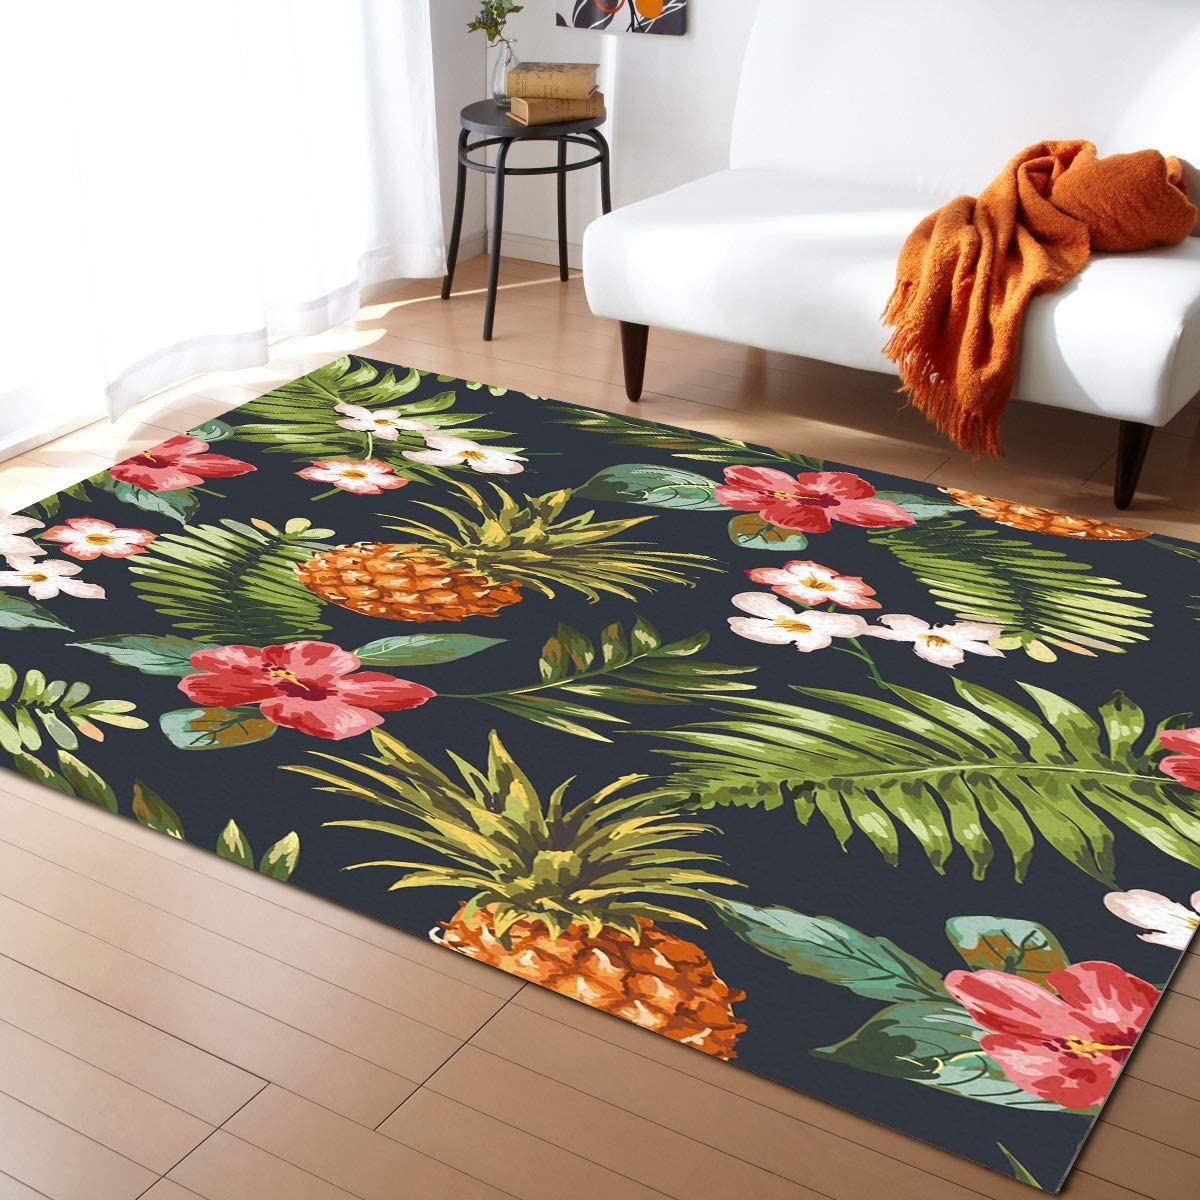 Fantasy Staring 予約 Non-Slip Area Rugs Room Leave Tropical Palm Mat- WEB限定